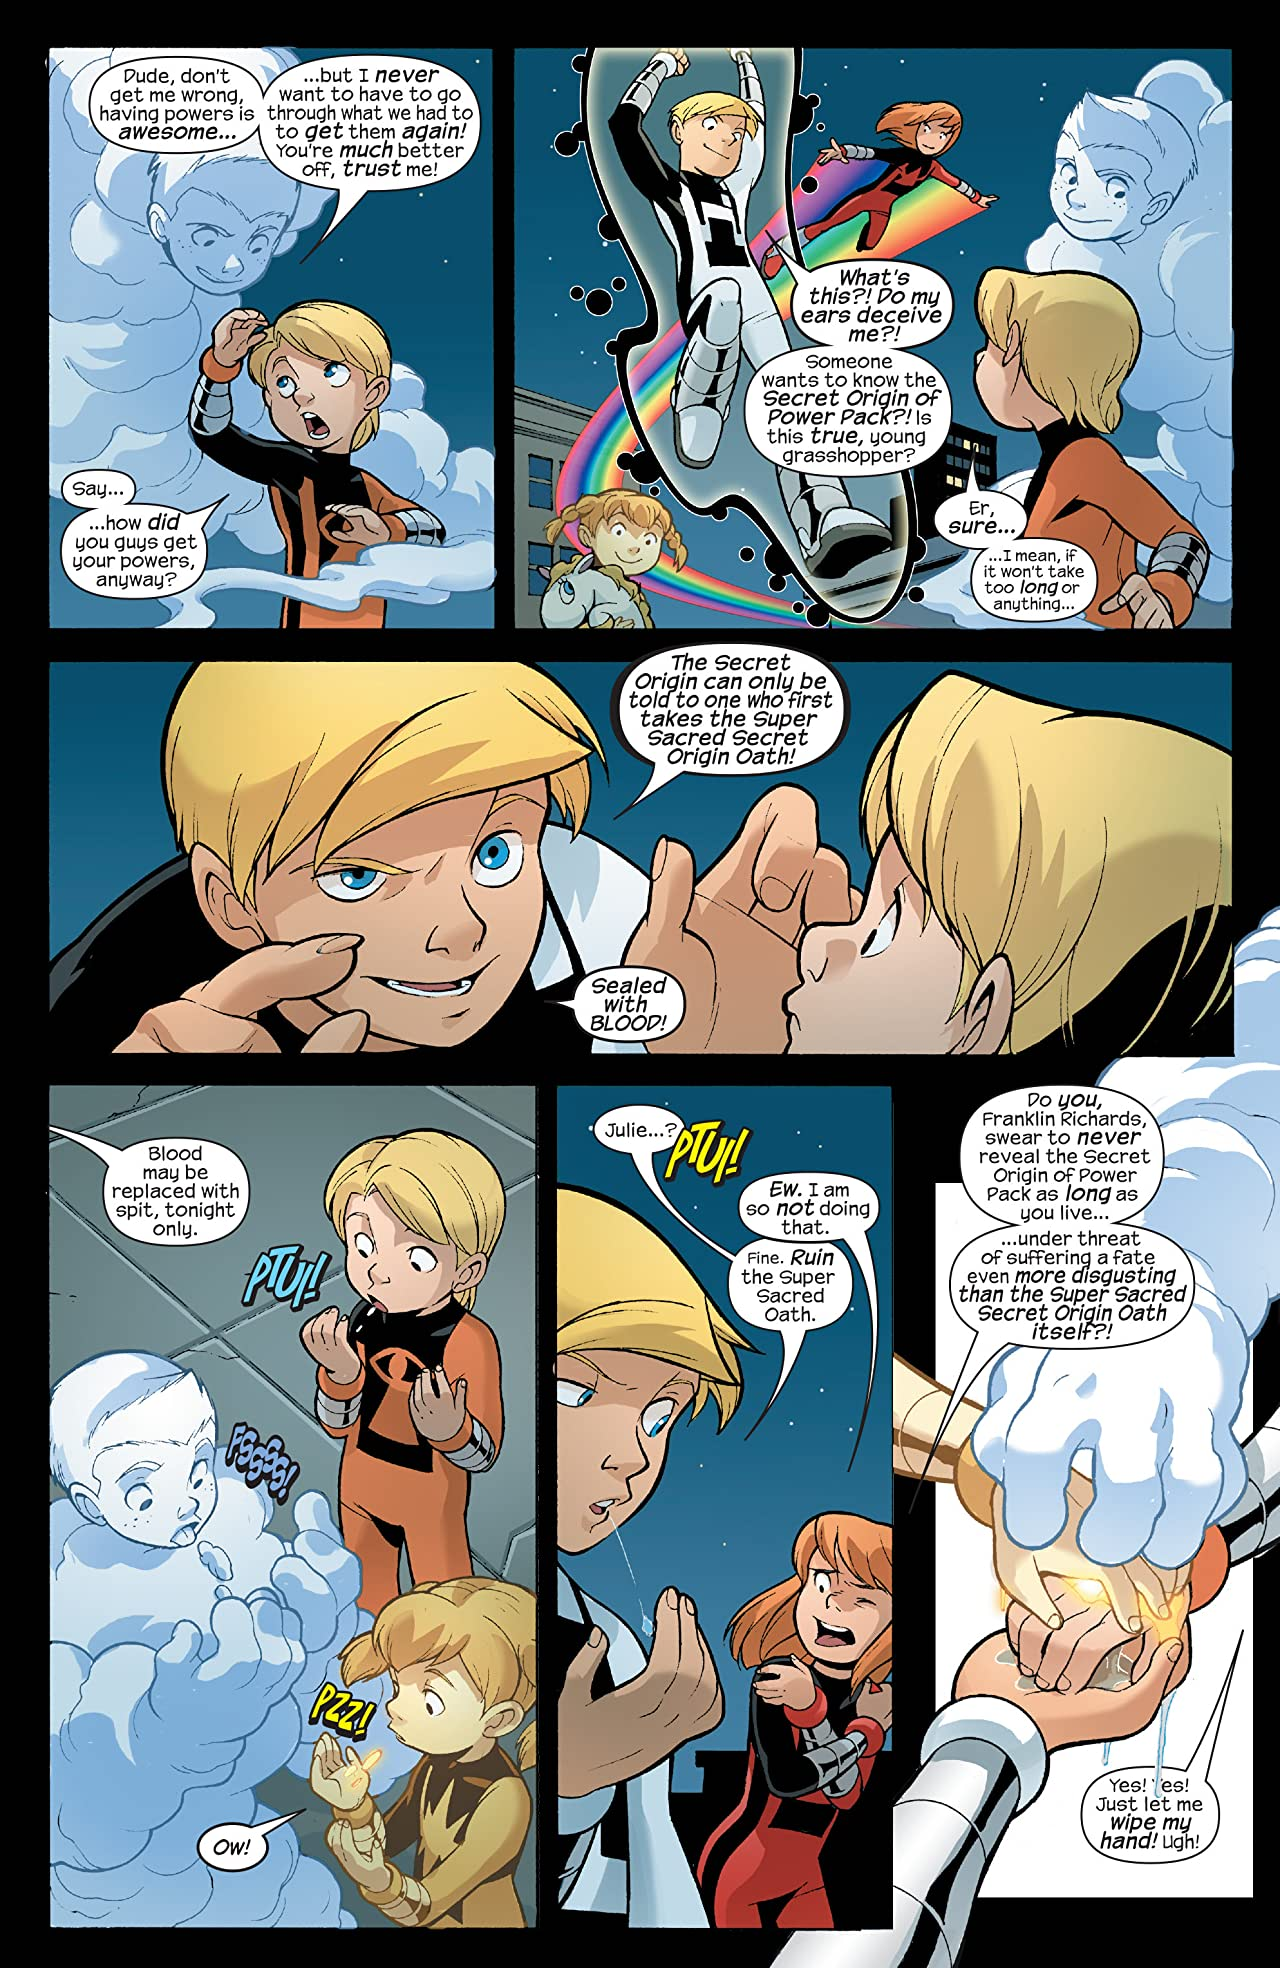 Power Pack: Day One (2008) #1 (of 4)